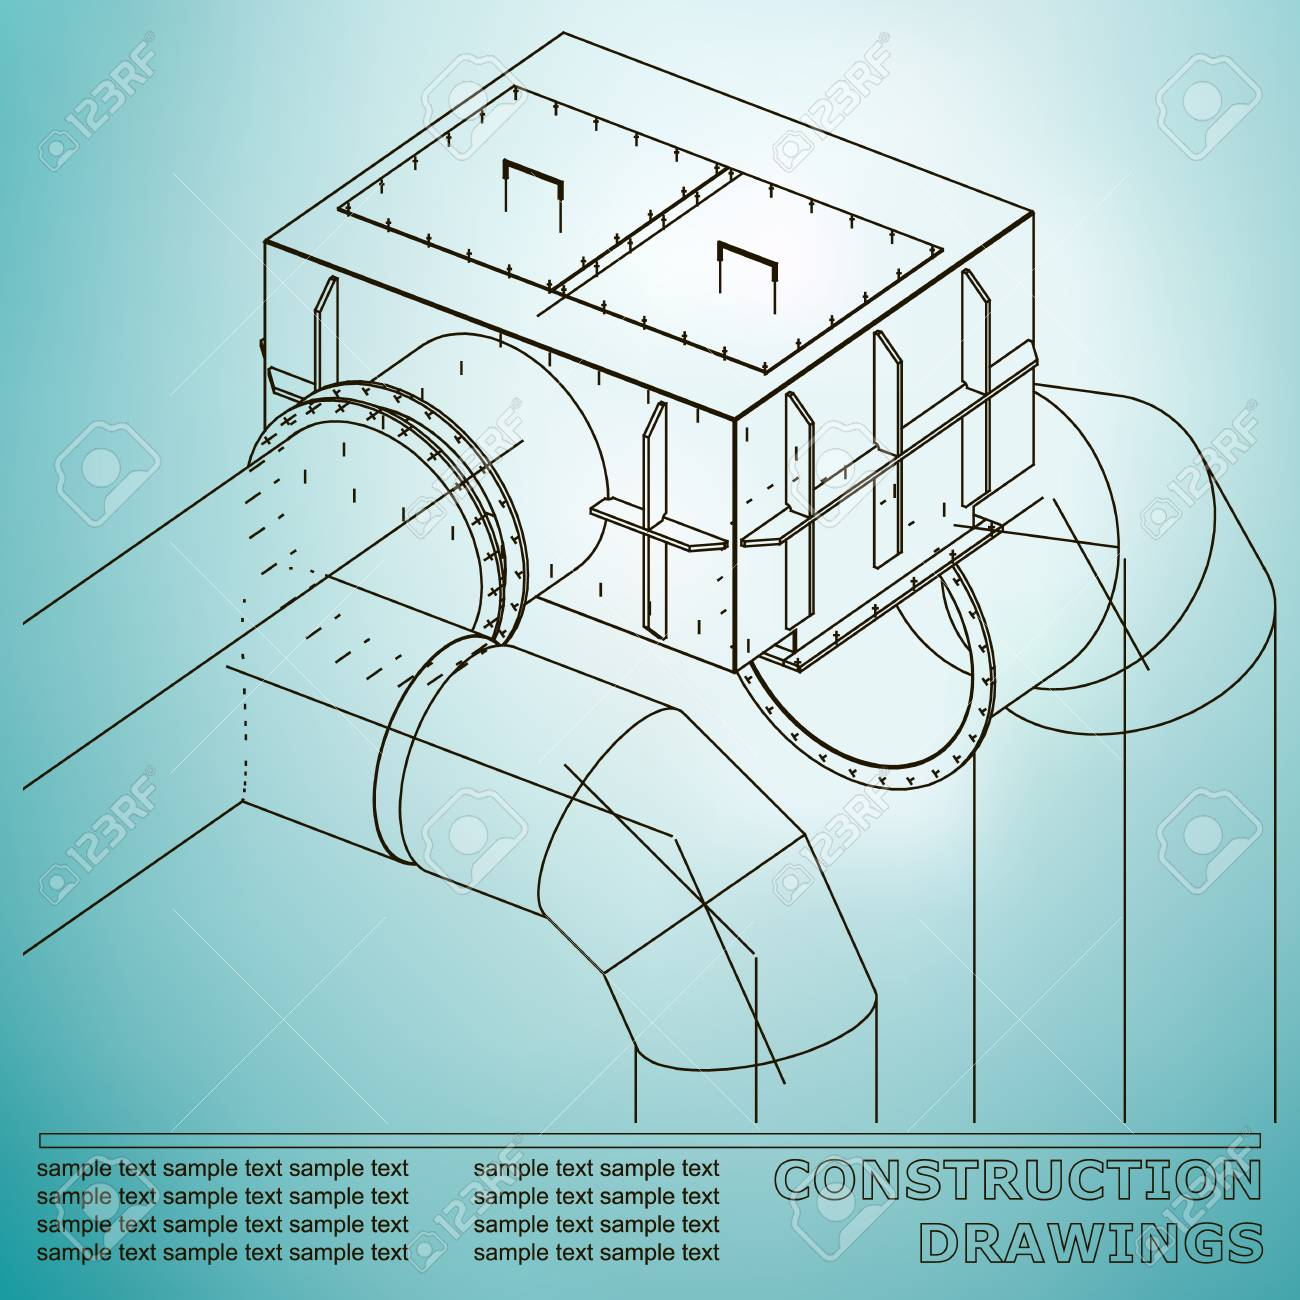 Drawings Of Structures. Pipes And Pipe. 3d Blueprint Of Steel ...